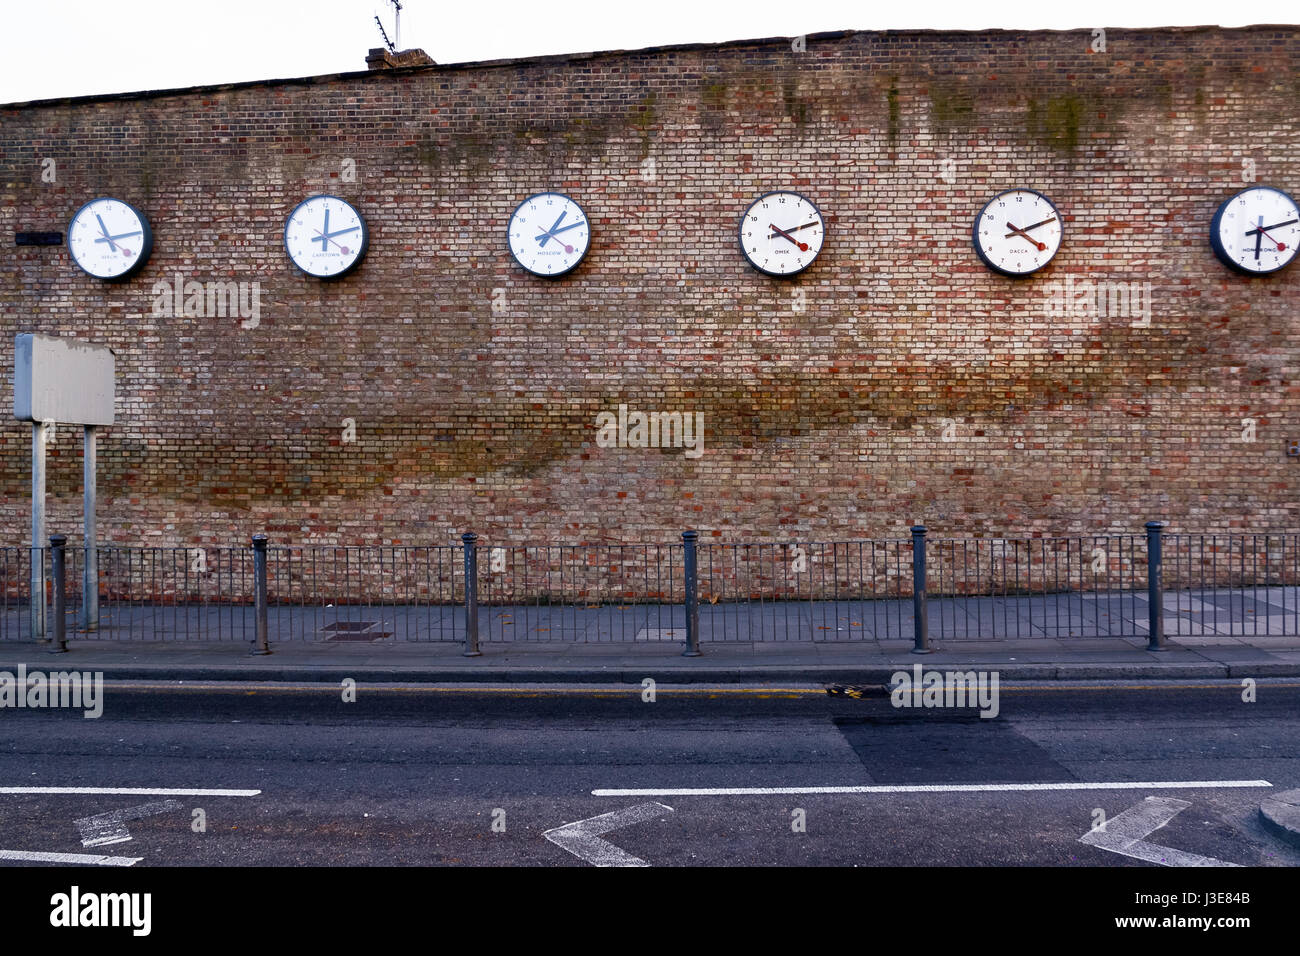 A series of clocks registering the times in major cities on Westferry Road, London - Stock Image